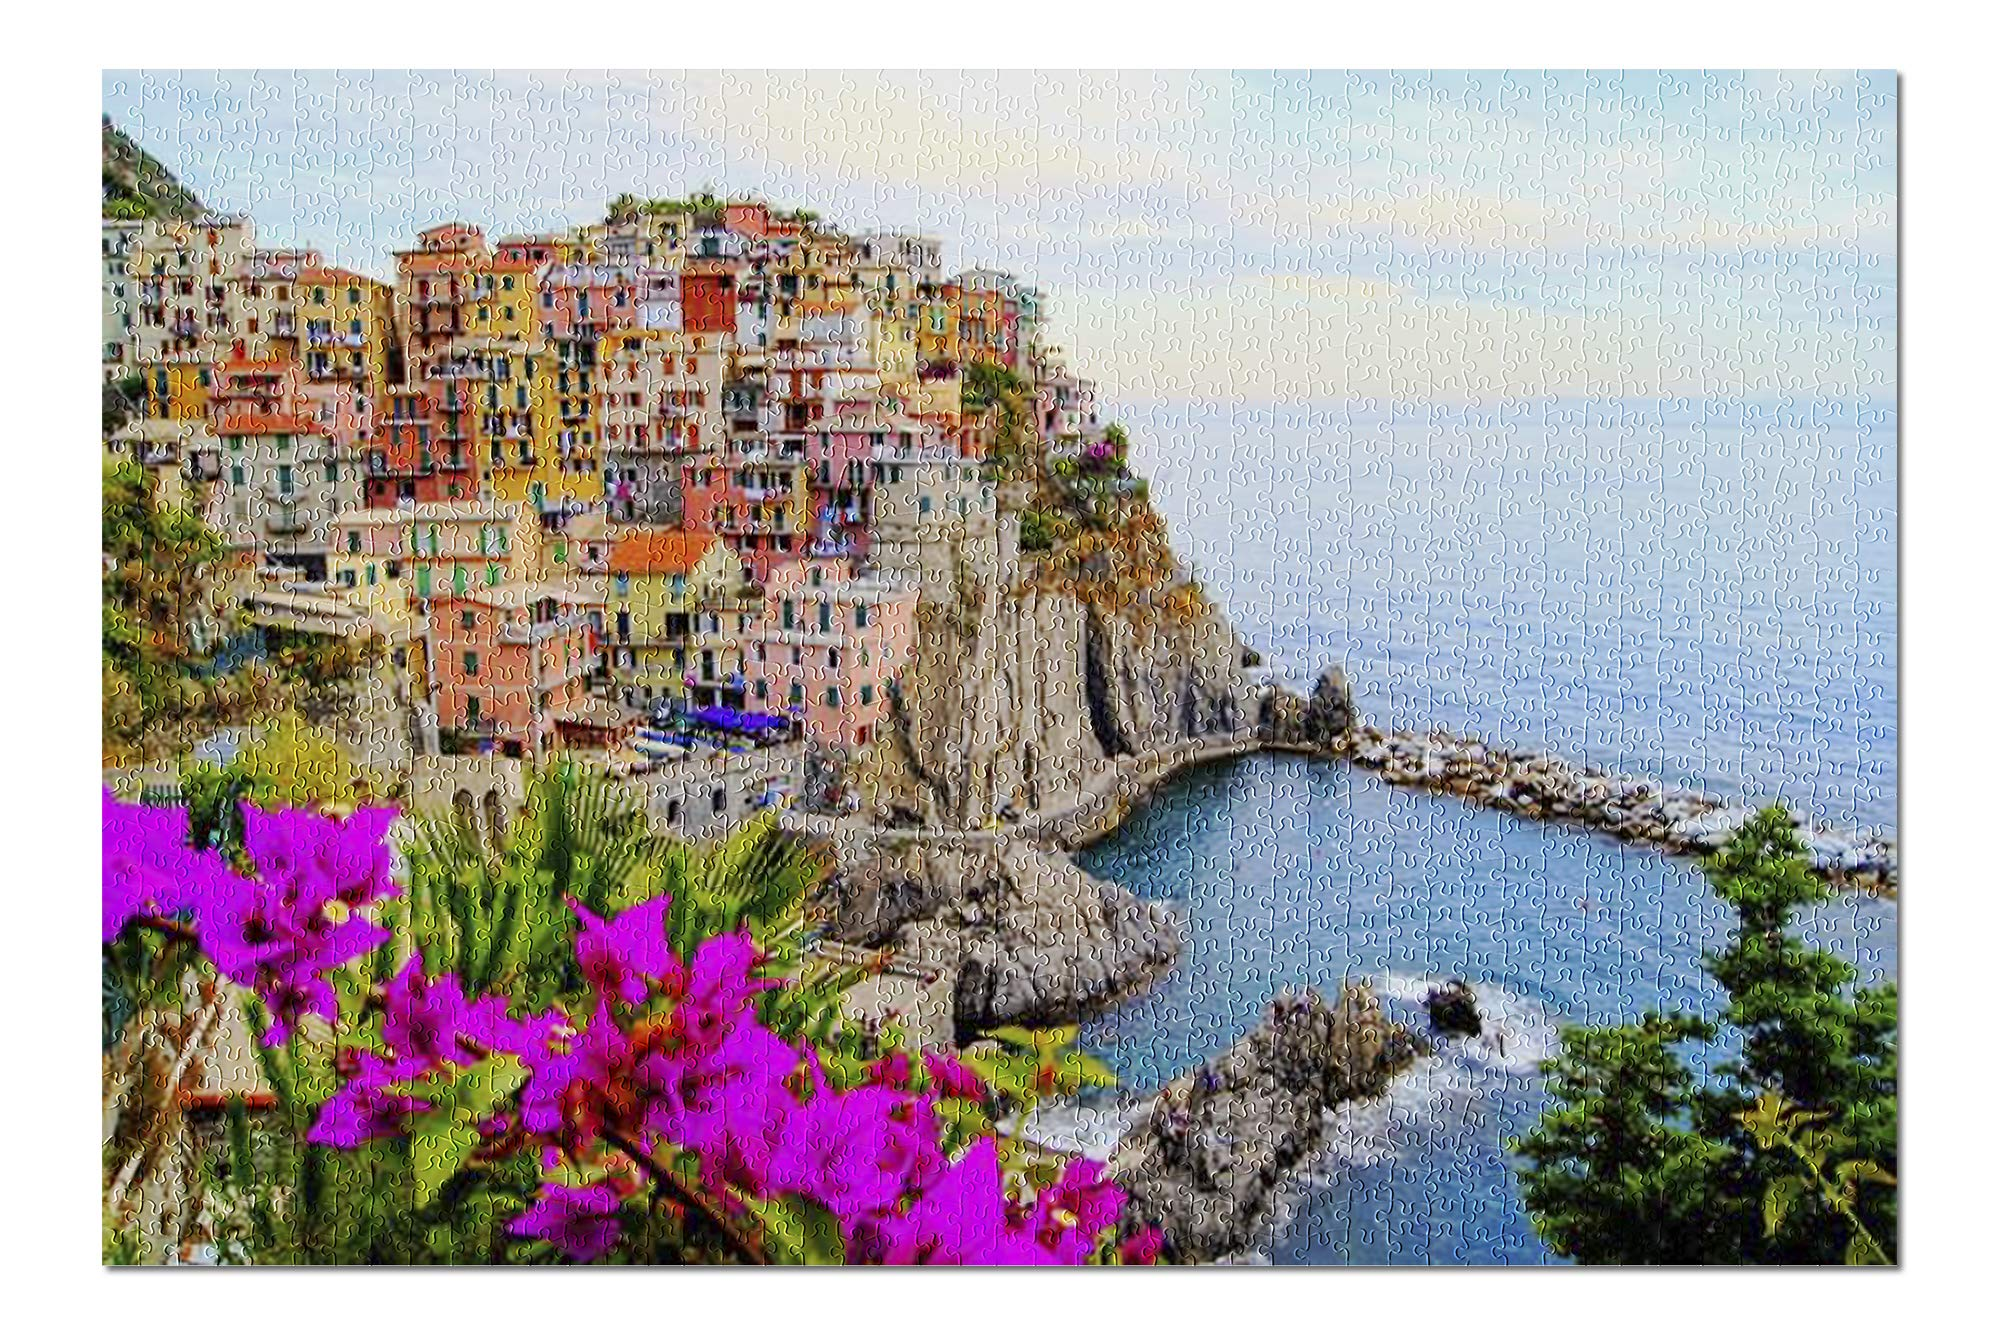 Cinque Terre - Coast of Italy with flowers 9002741 (19x27 Premium 1000 Piece Jigsaw Puzzle, Made in USA!)